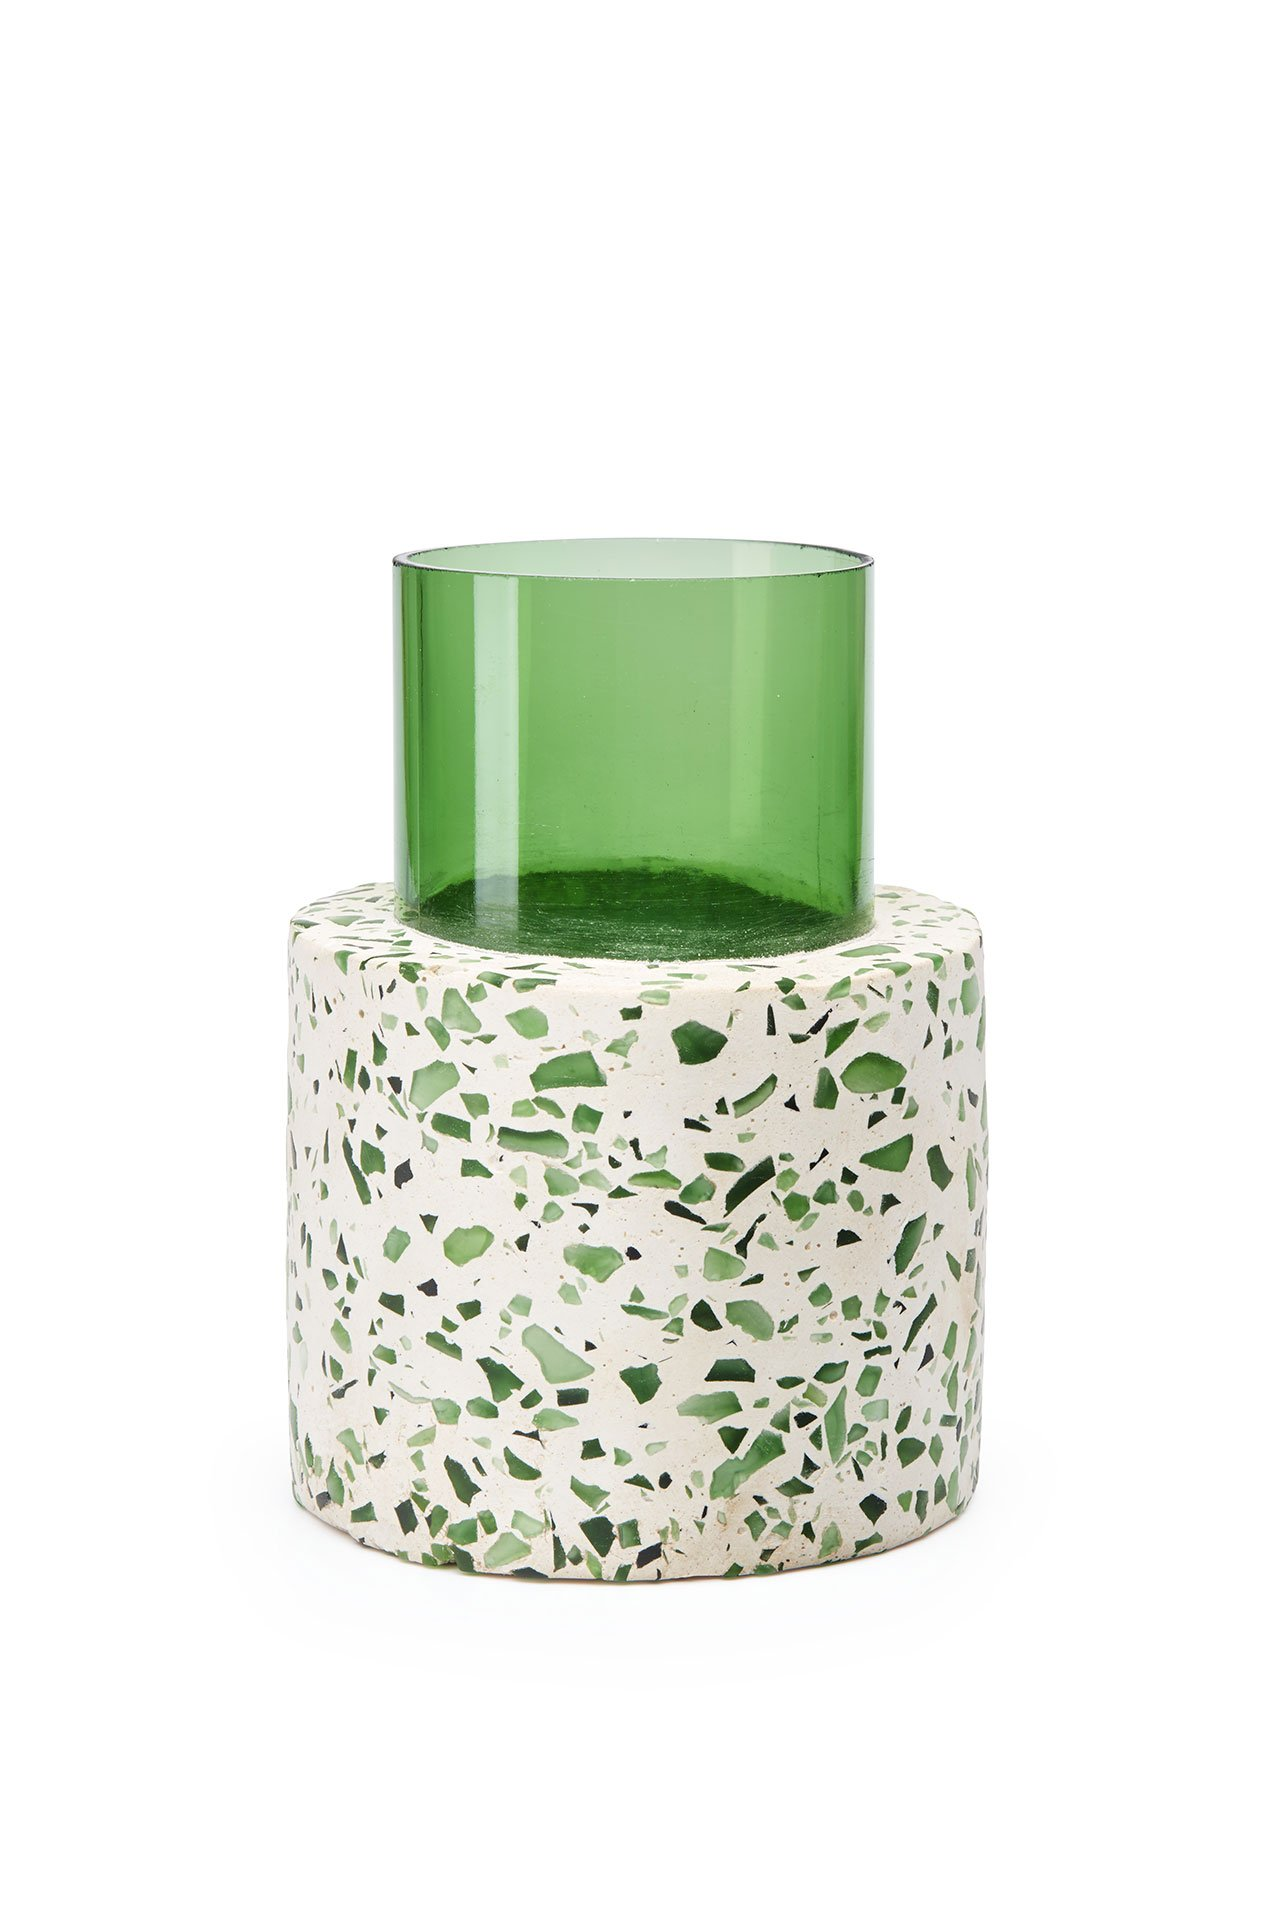 FLOWER | BLOCK vase from Trending Terrazzo collection by Bottle-up.